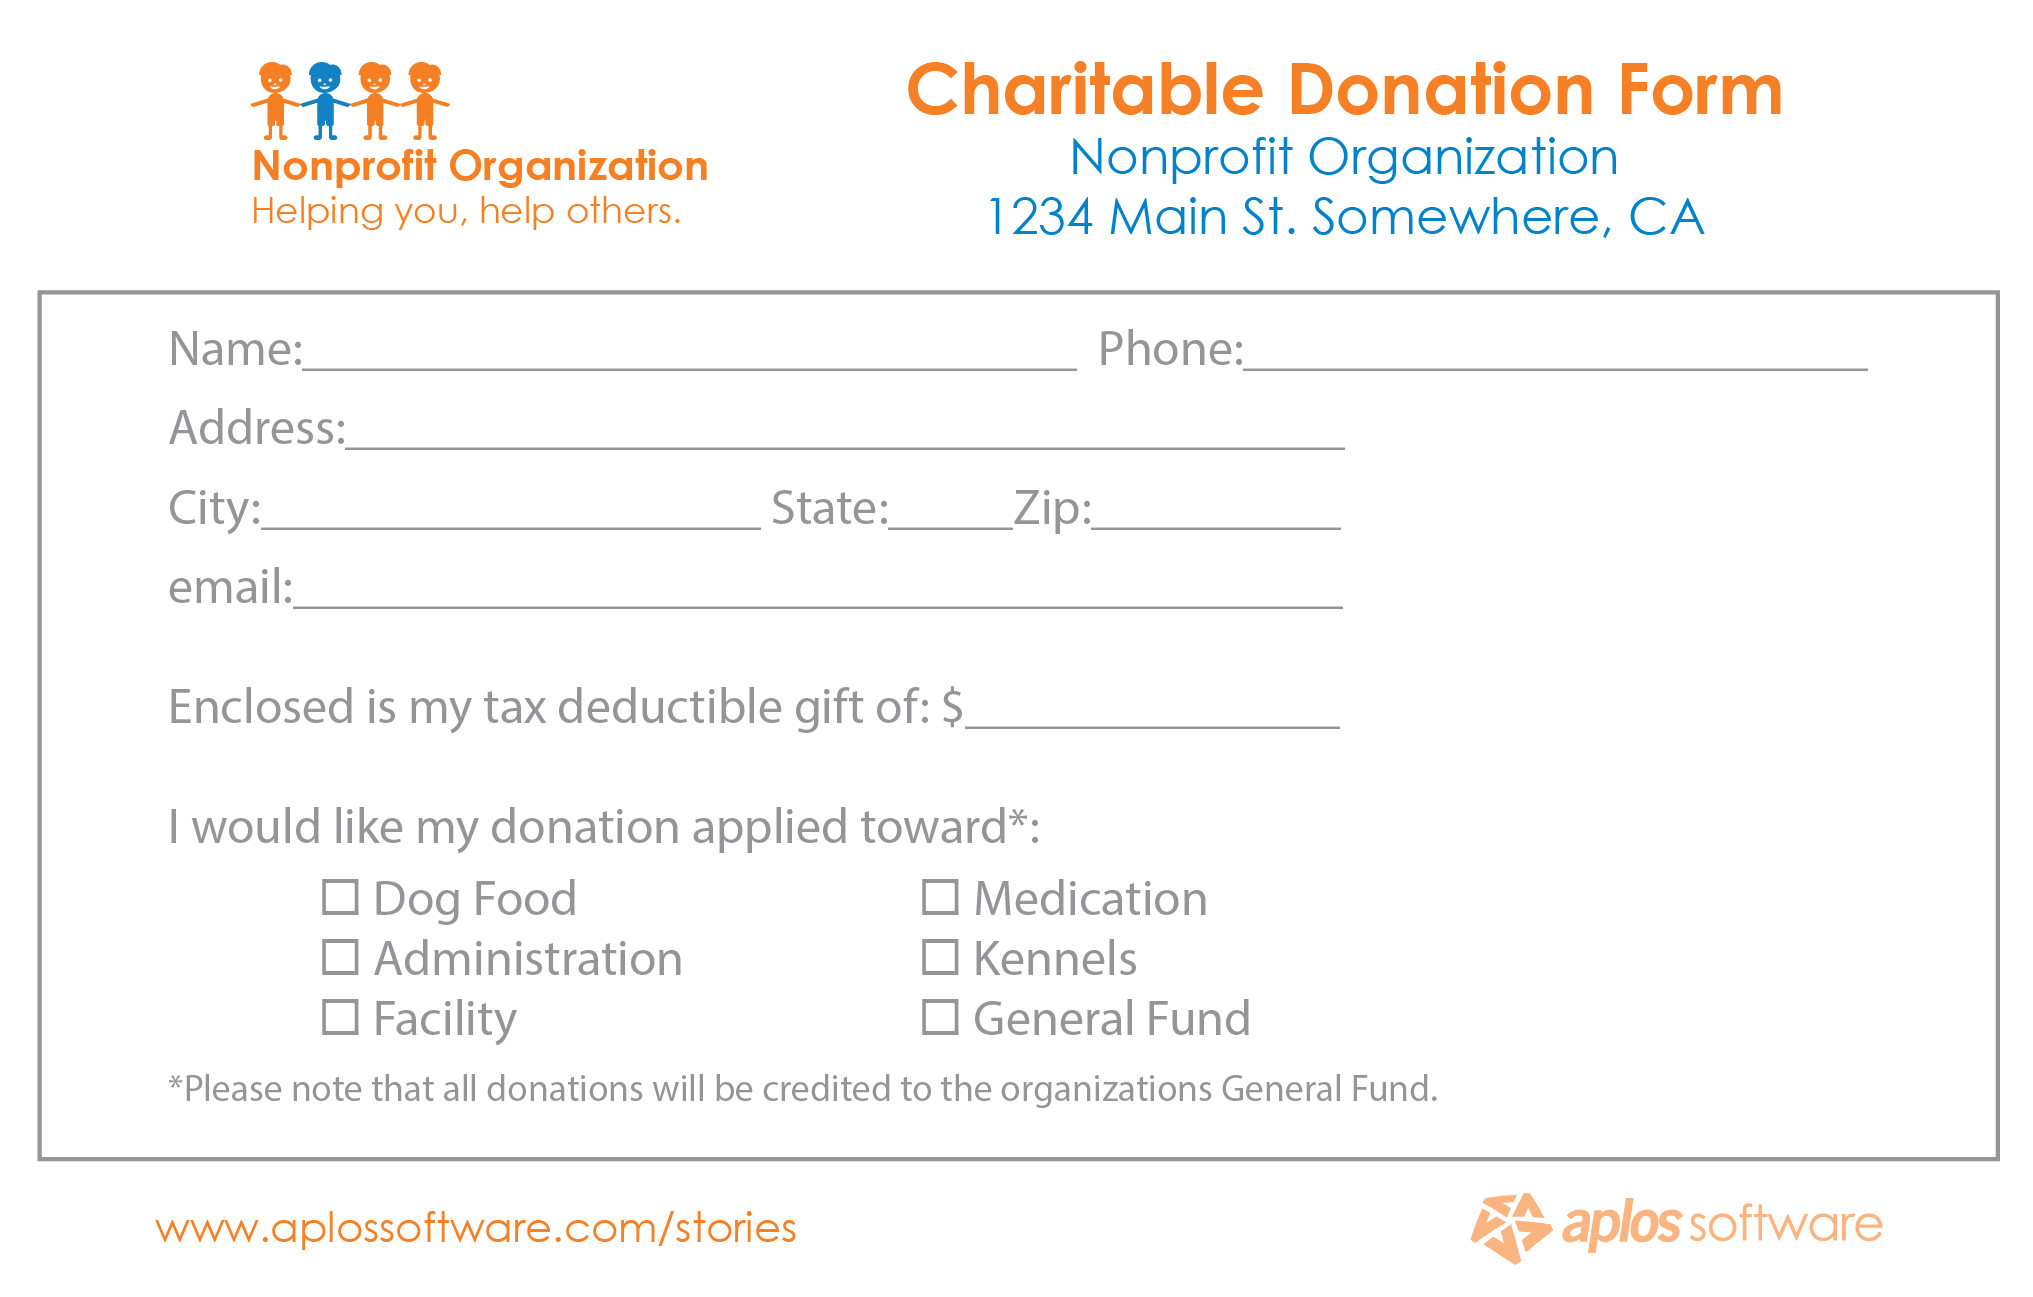 Donation Pledge Card Template the One Mistake that Almost Killed Our Fundraiser